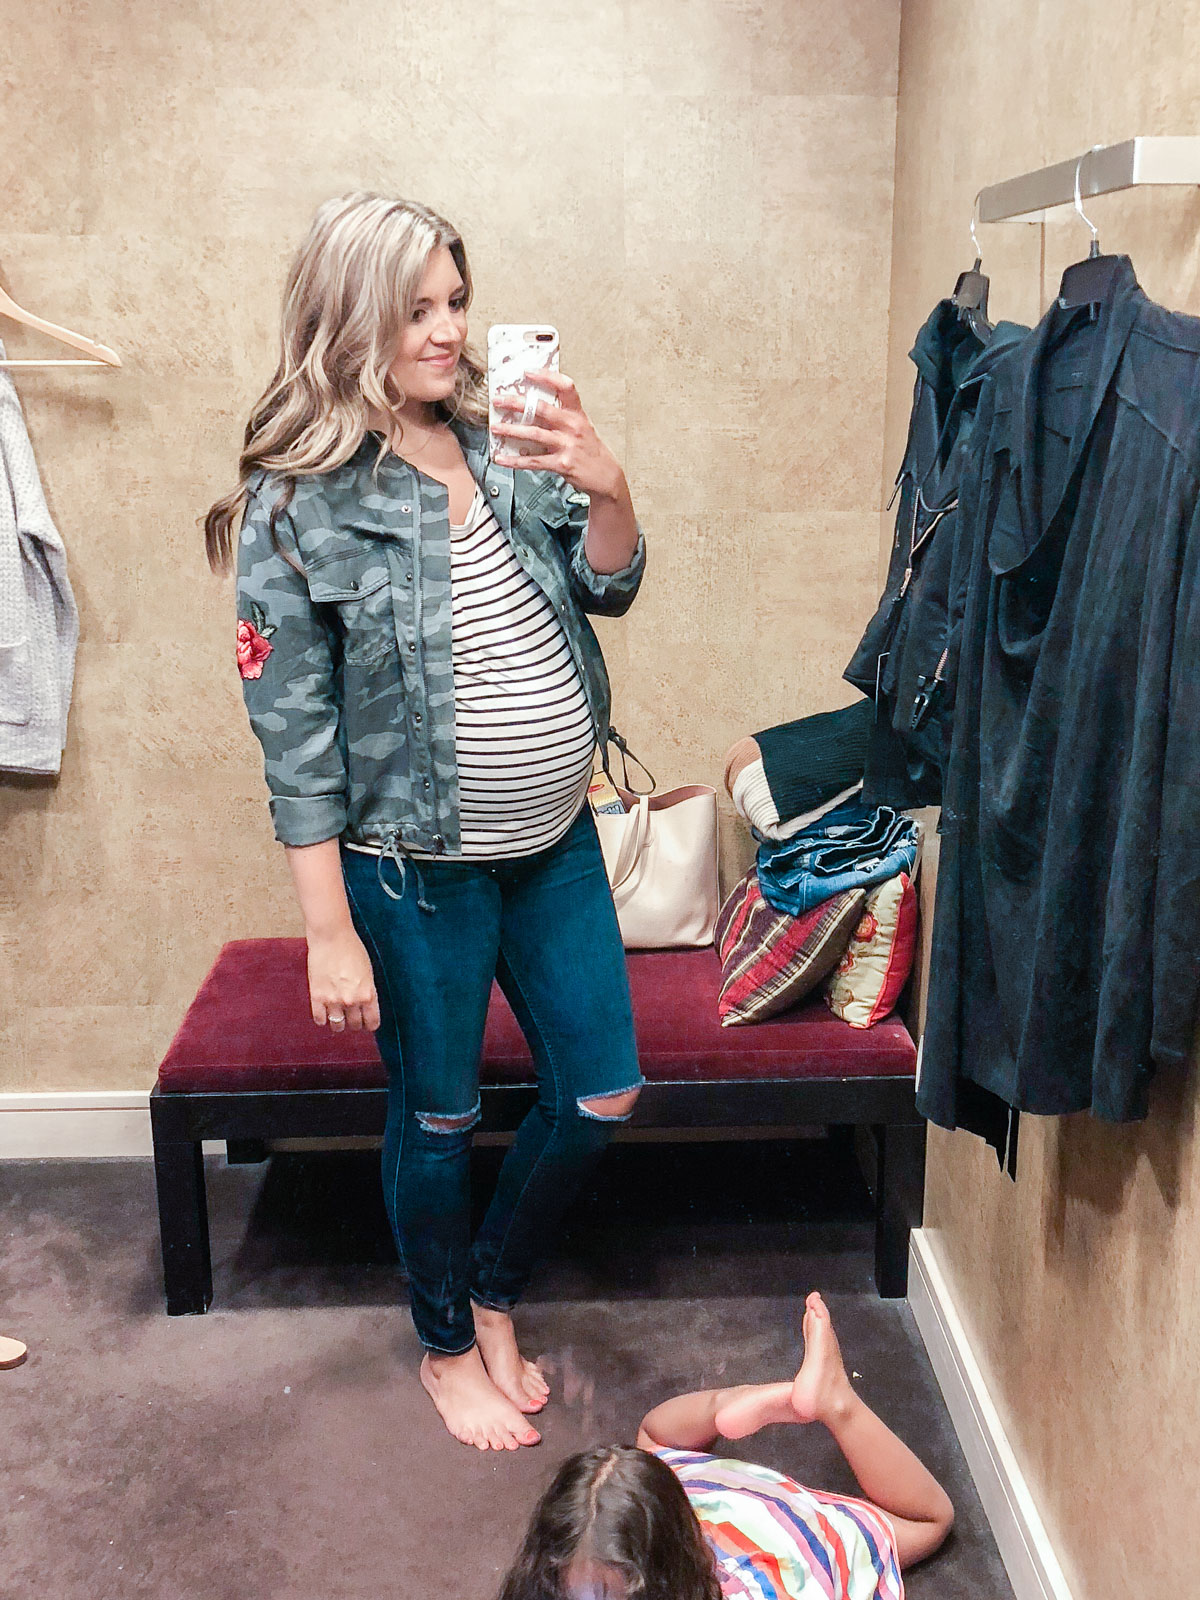 camo jacket and stripe tee - Nordstrom anniversary sale 2018 try-on session: over 25 items reviewed for fit and size! | bylaurenm.com